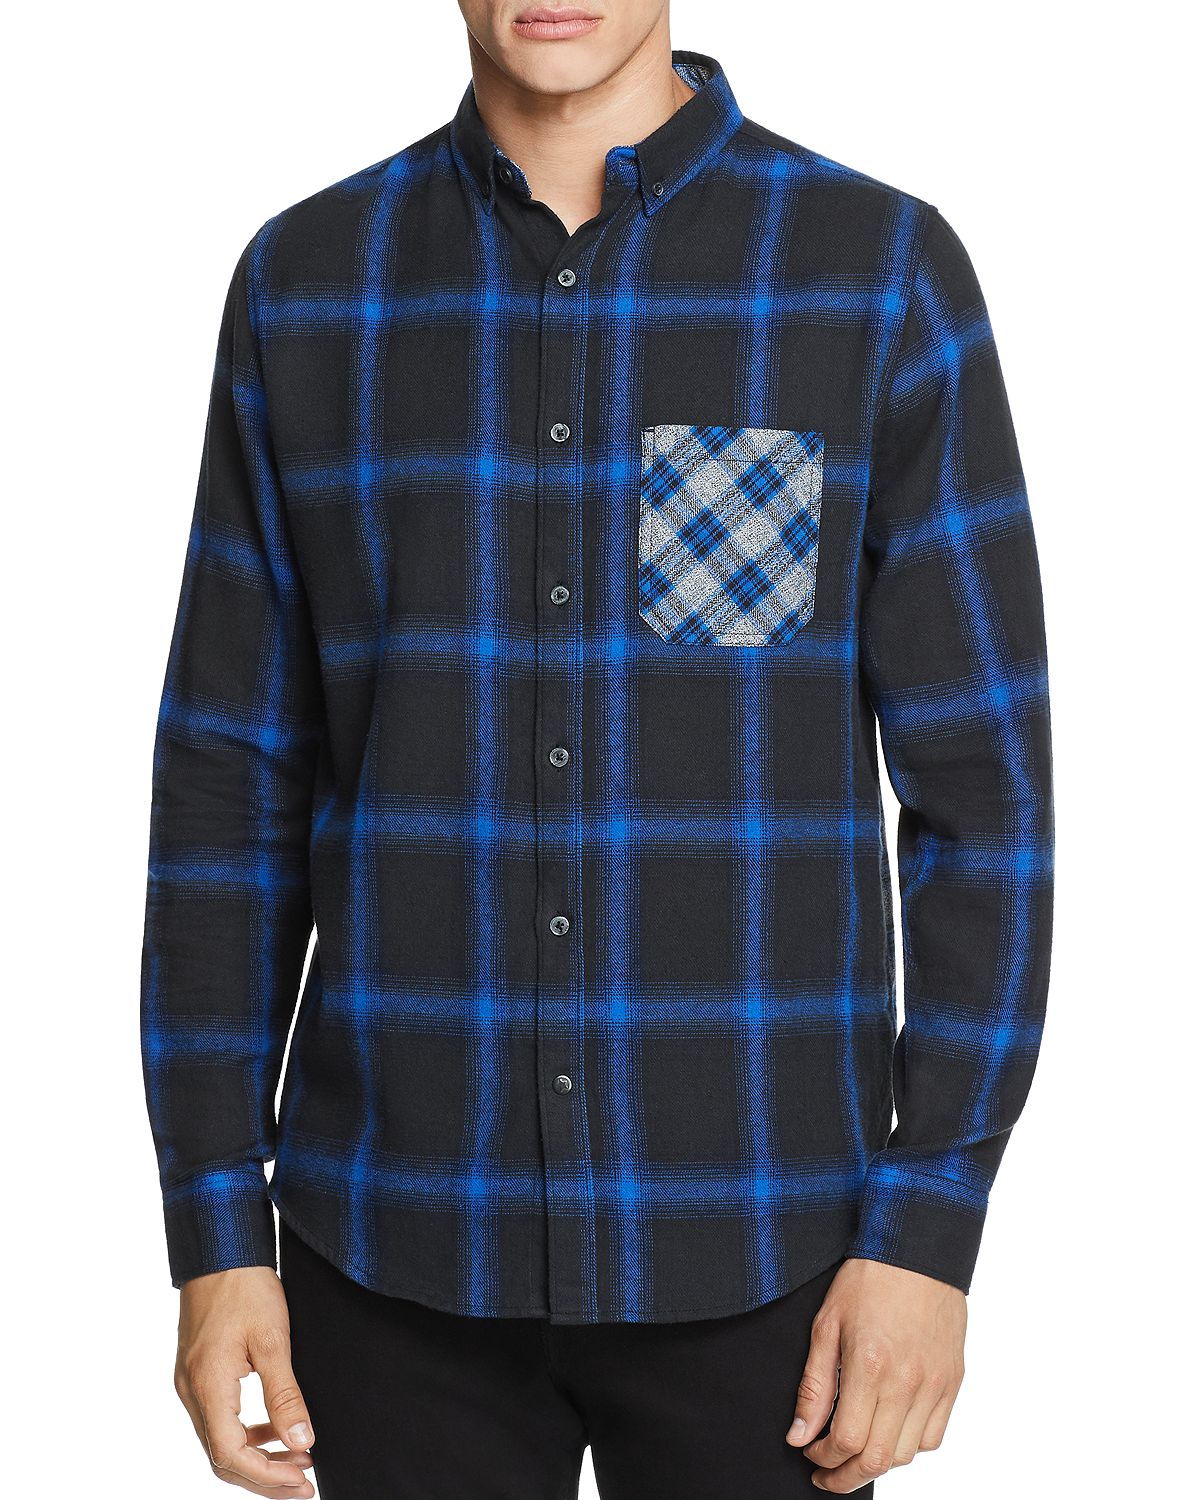 Sovereign Code Local Legend Mixed-print Flannel Regular Fit Button-down Shirt